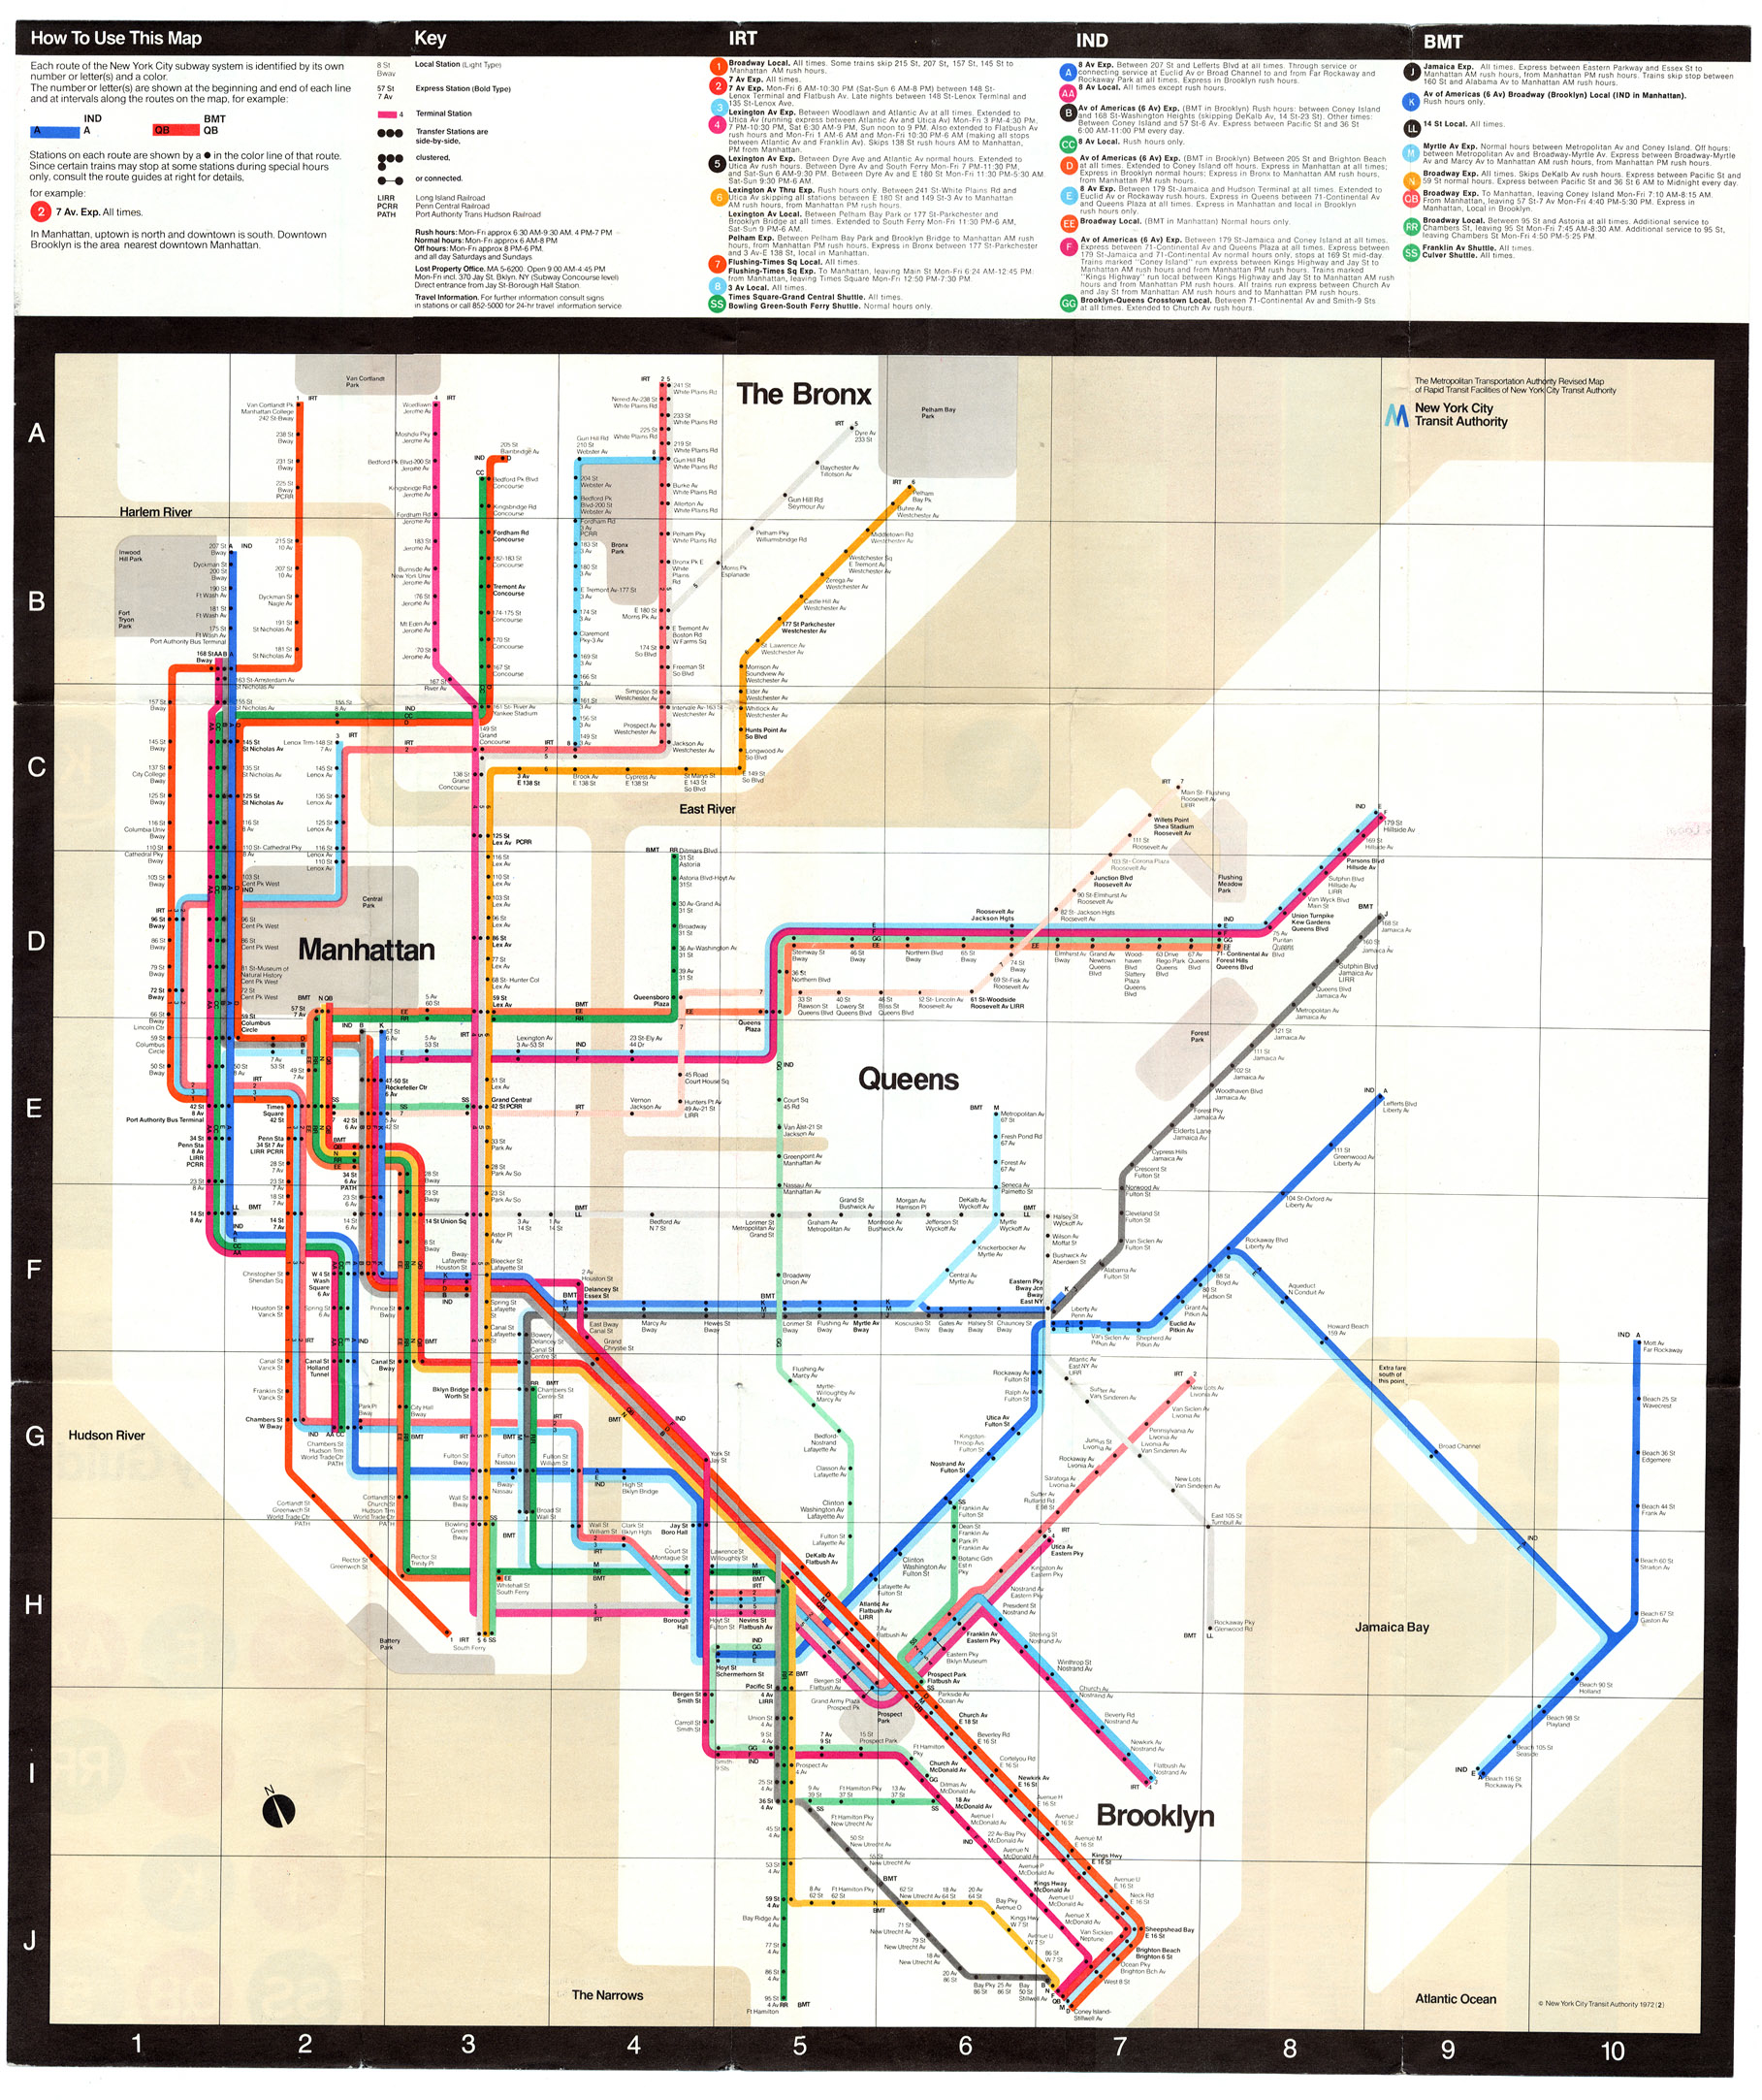 Custom Subway Map Creator.Subway Maps Musings On Maps